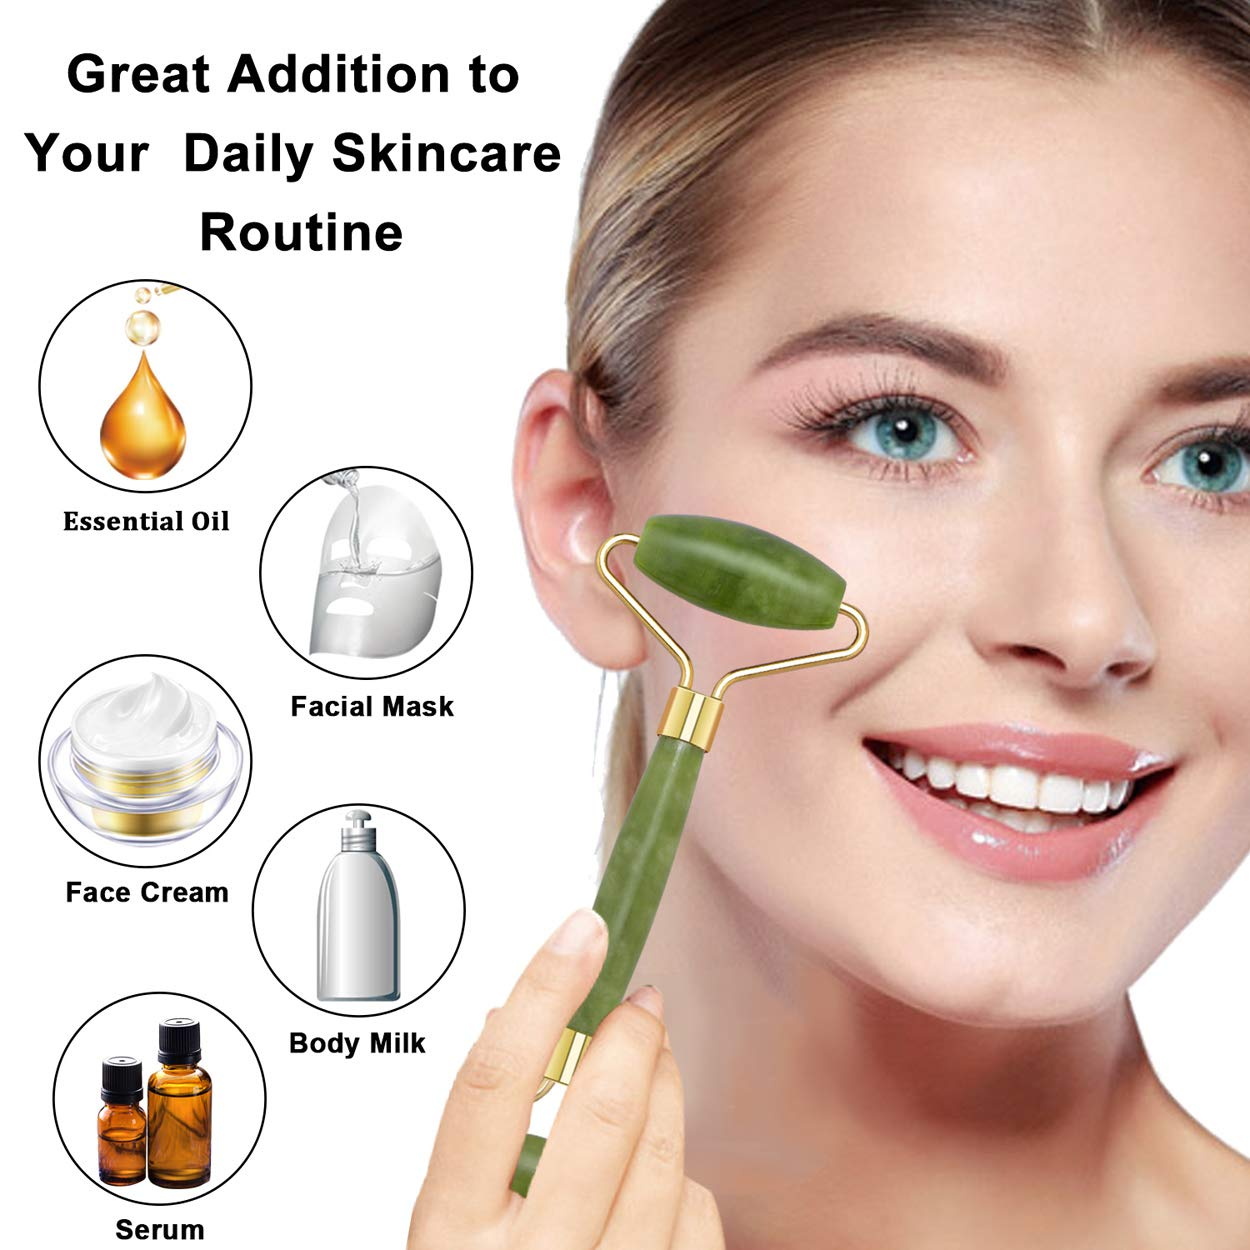 Jade Roller for Face & Gua Sha Scraping Tool, 100% Real Natural Jade Facial Roller, 2 in 1 Anti-Aging Face Roller Massager for Cheeks Slimmer, Skin Tightening, Face Firming, Rejuvenate Skin (Green)